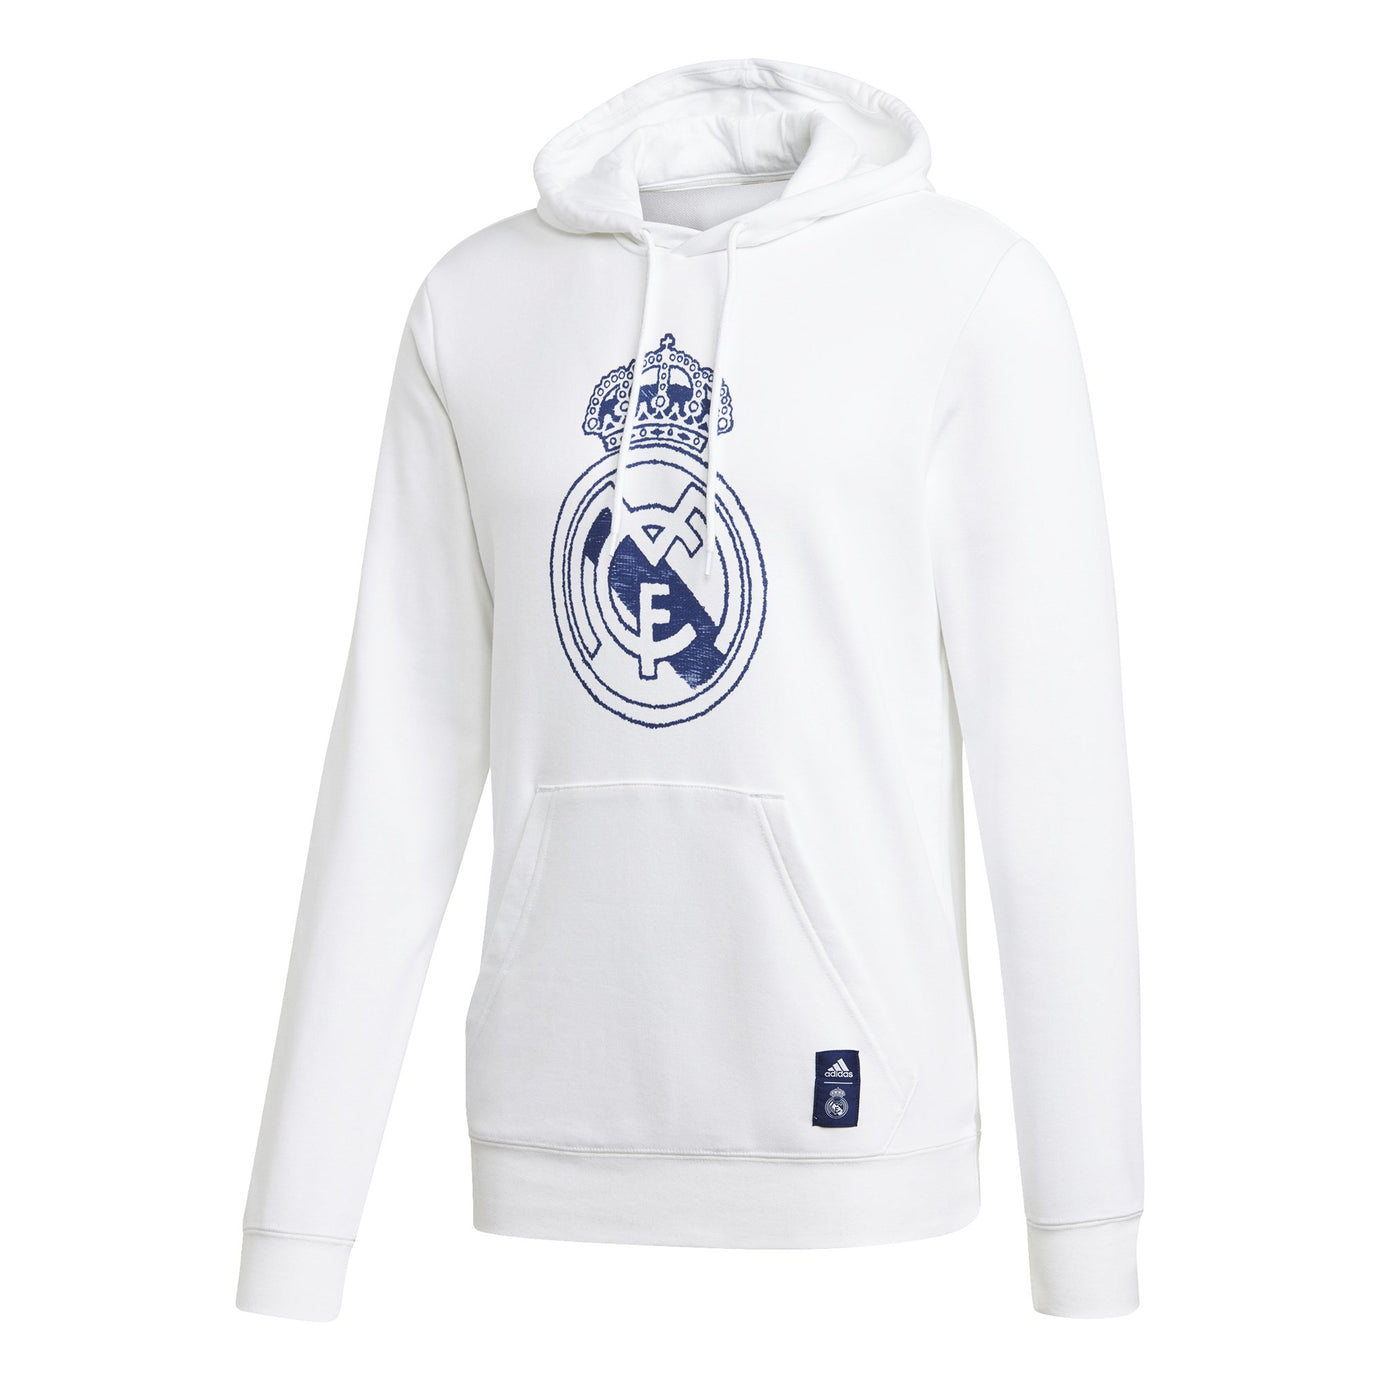 ADI REAL 20-21 DNA HOODY WHITE/DARK BLUE